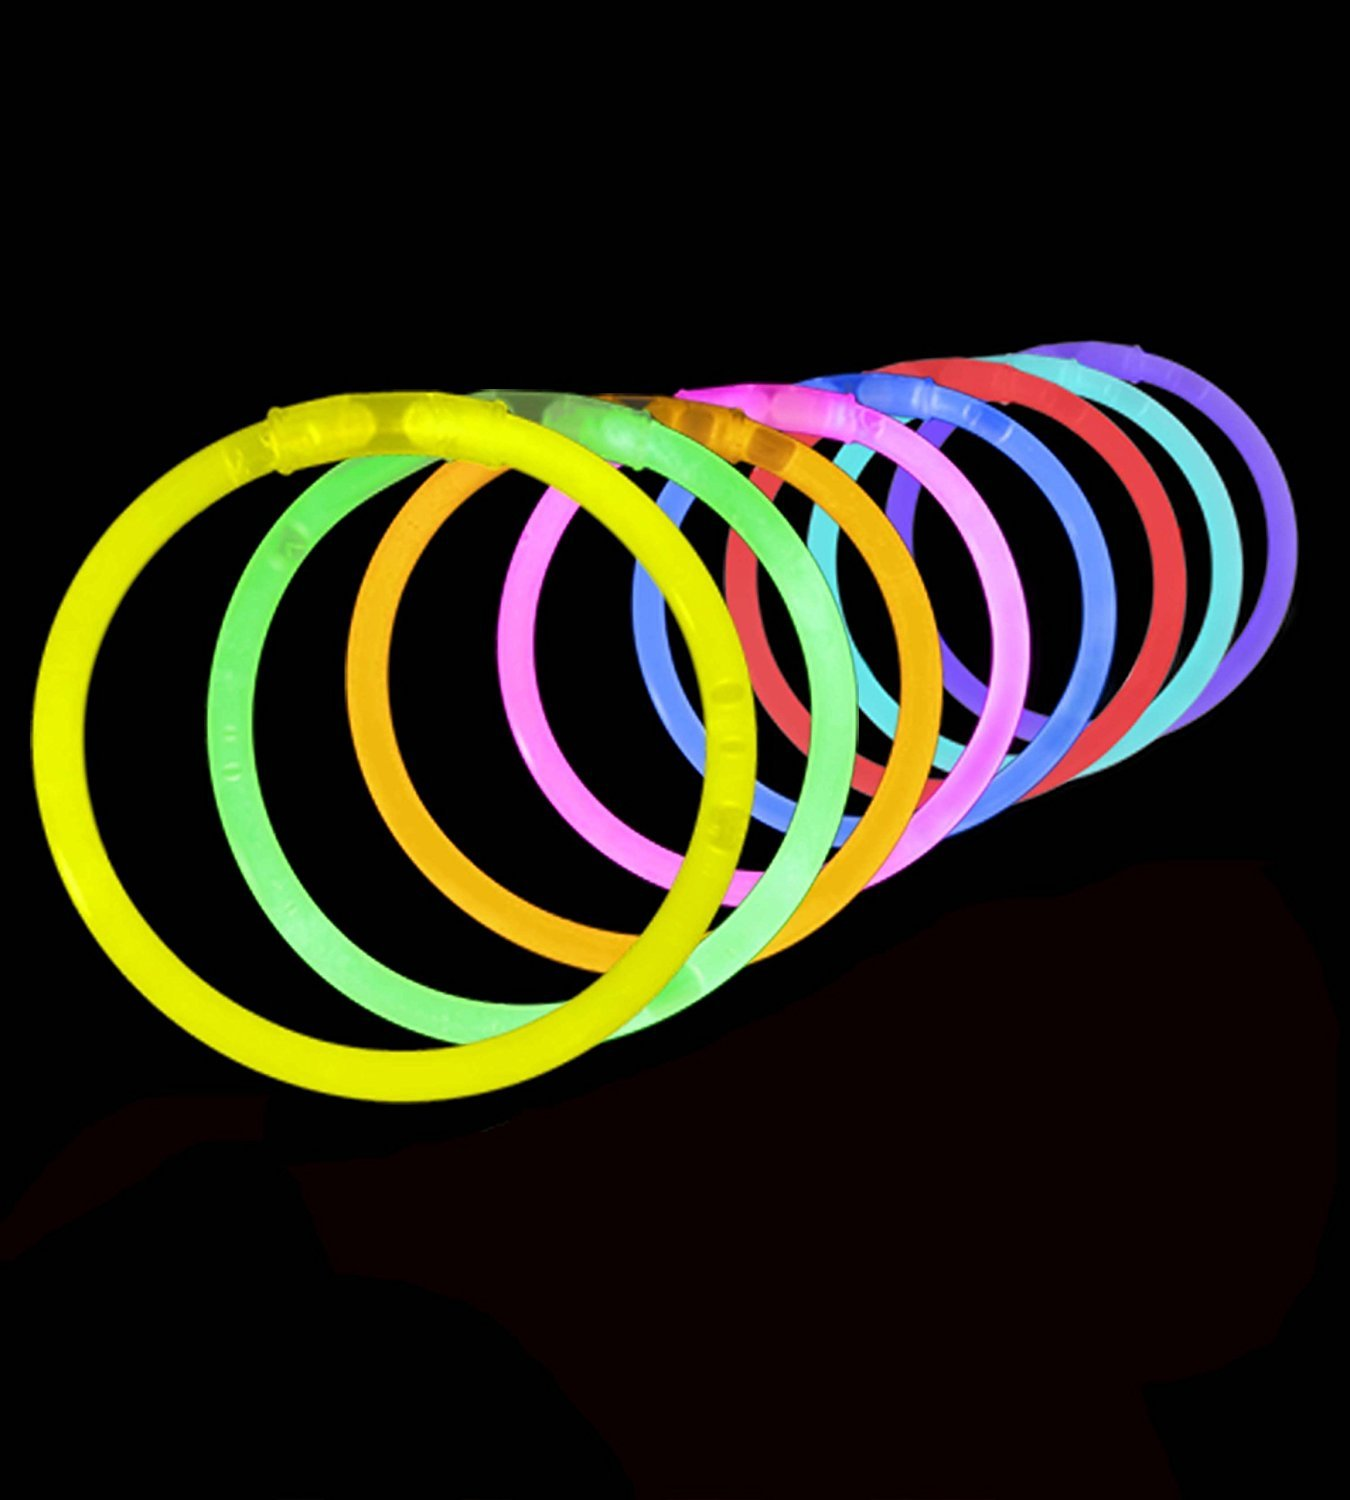 Lumistick Glow Sticks Variety Pack of Glowing Party Favors Includes Necklaces, Bracelets and Glasses (Assorted, 200 Packs) by Lumistick (Image #5)